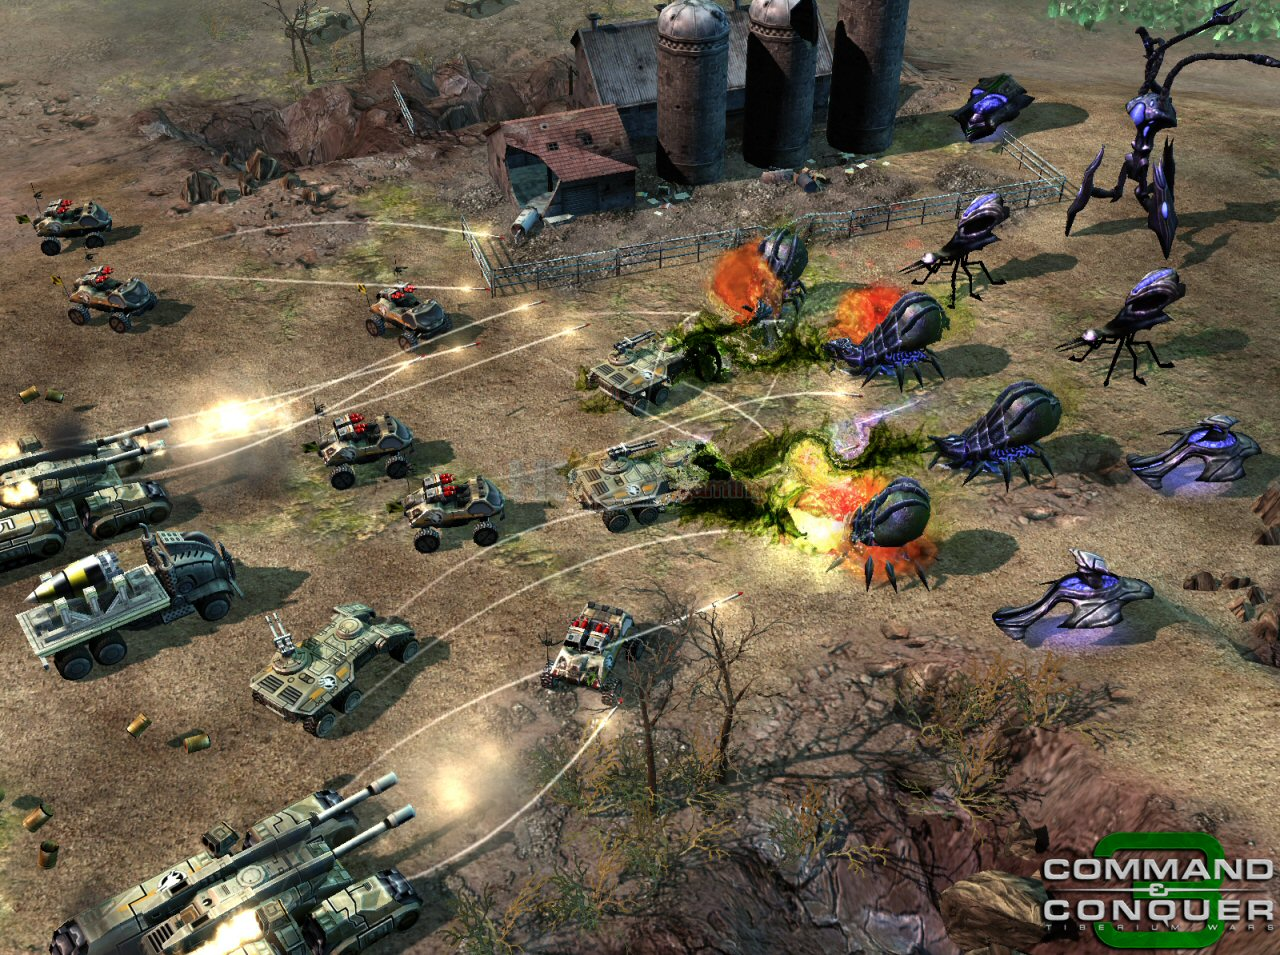 [gamegokil.com] Command and Conquer 3 Tiberium Wars PC